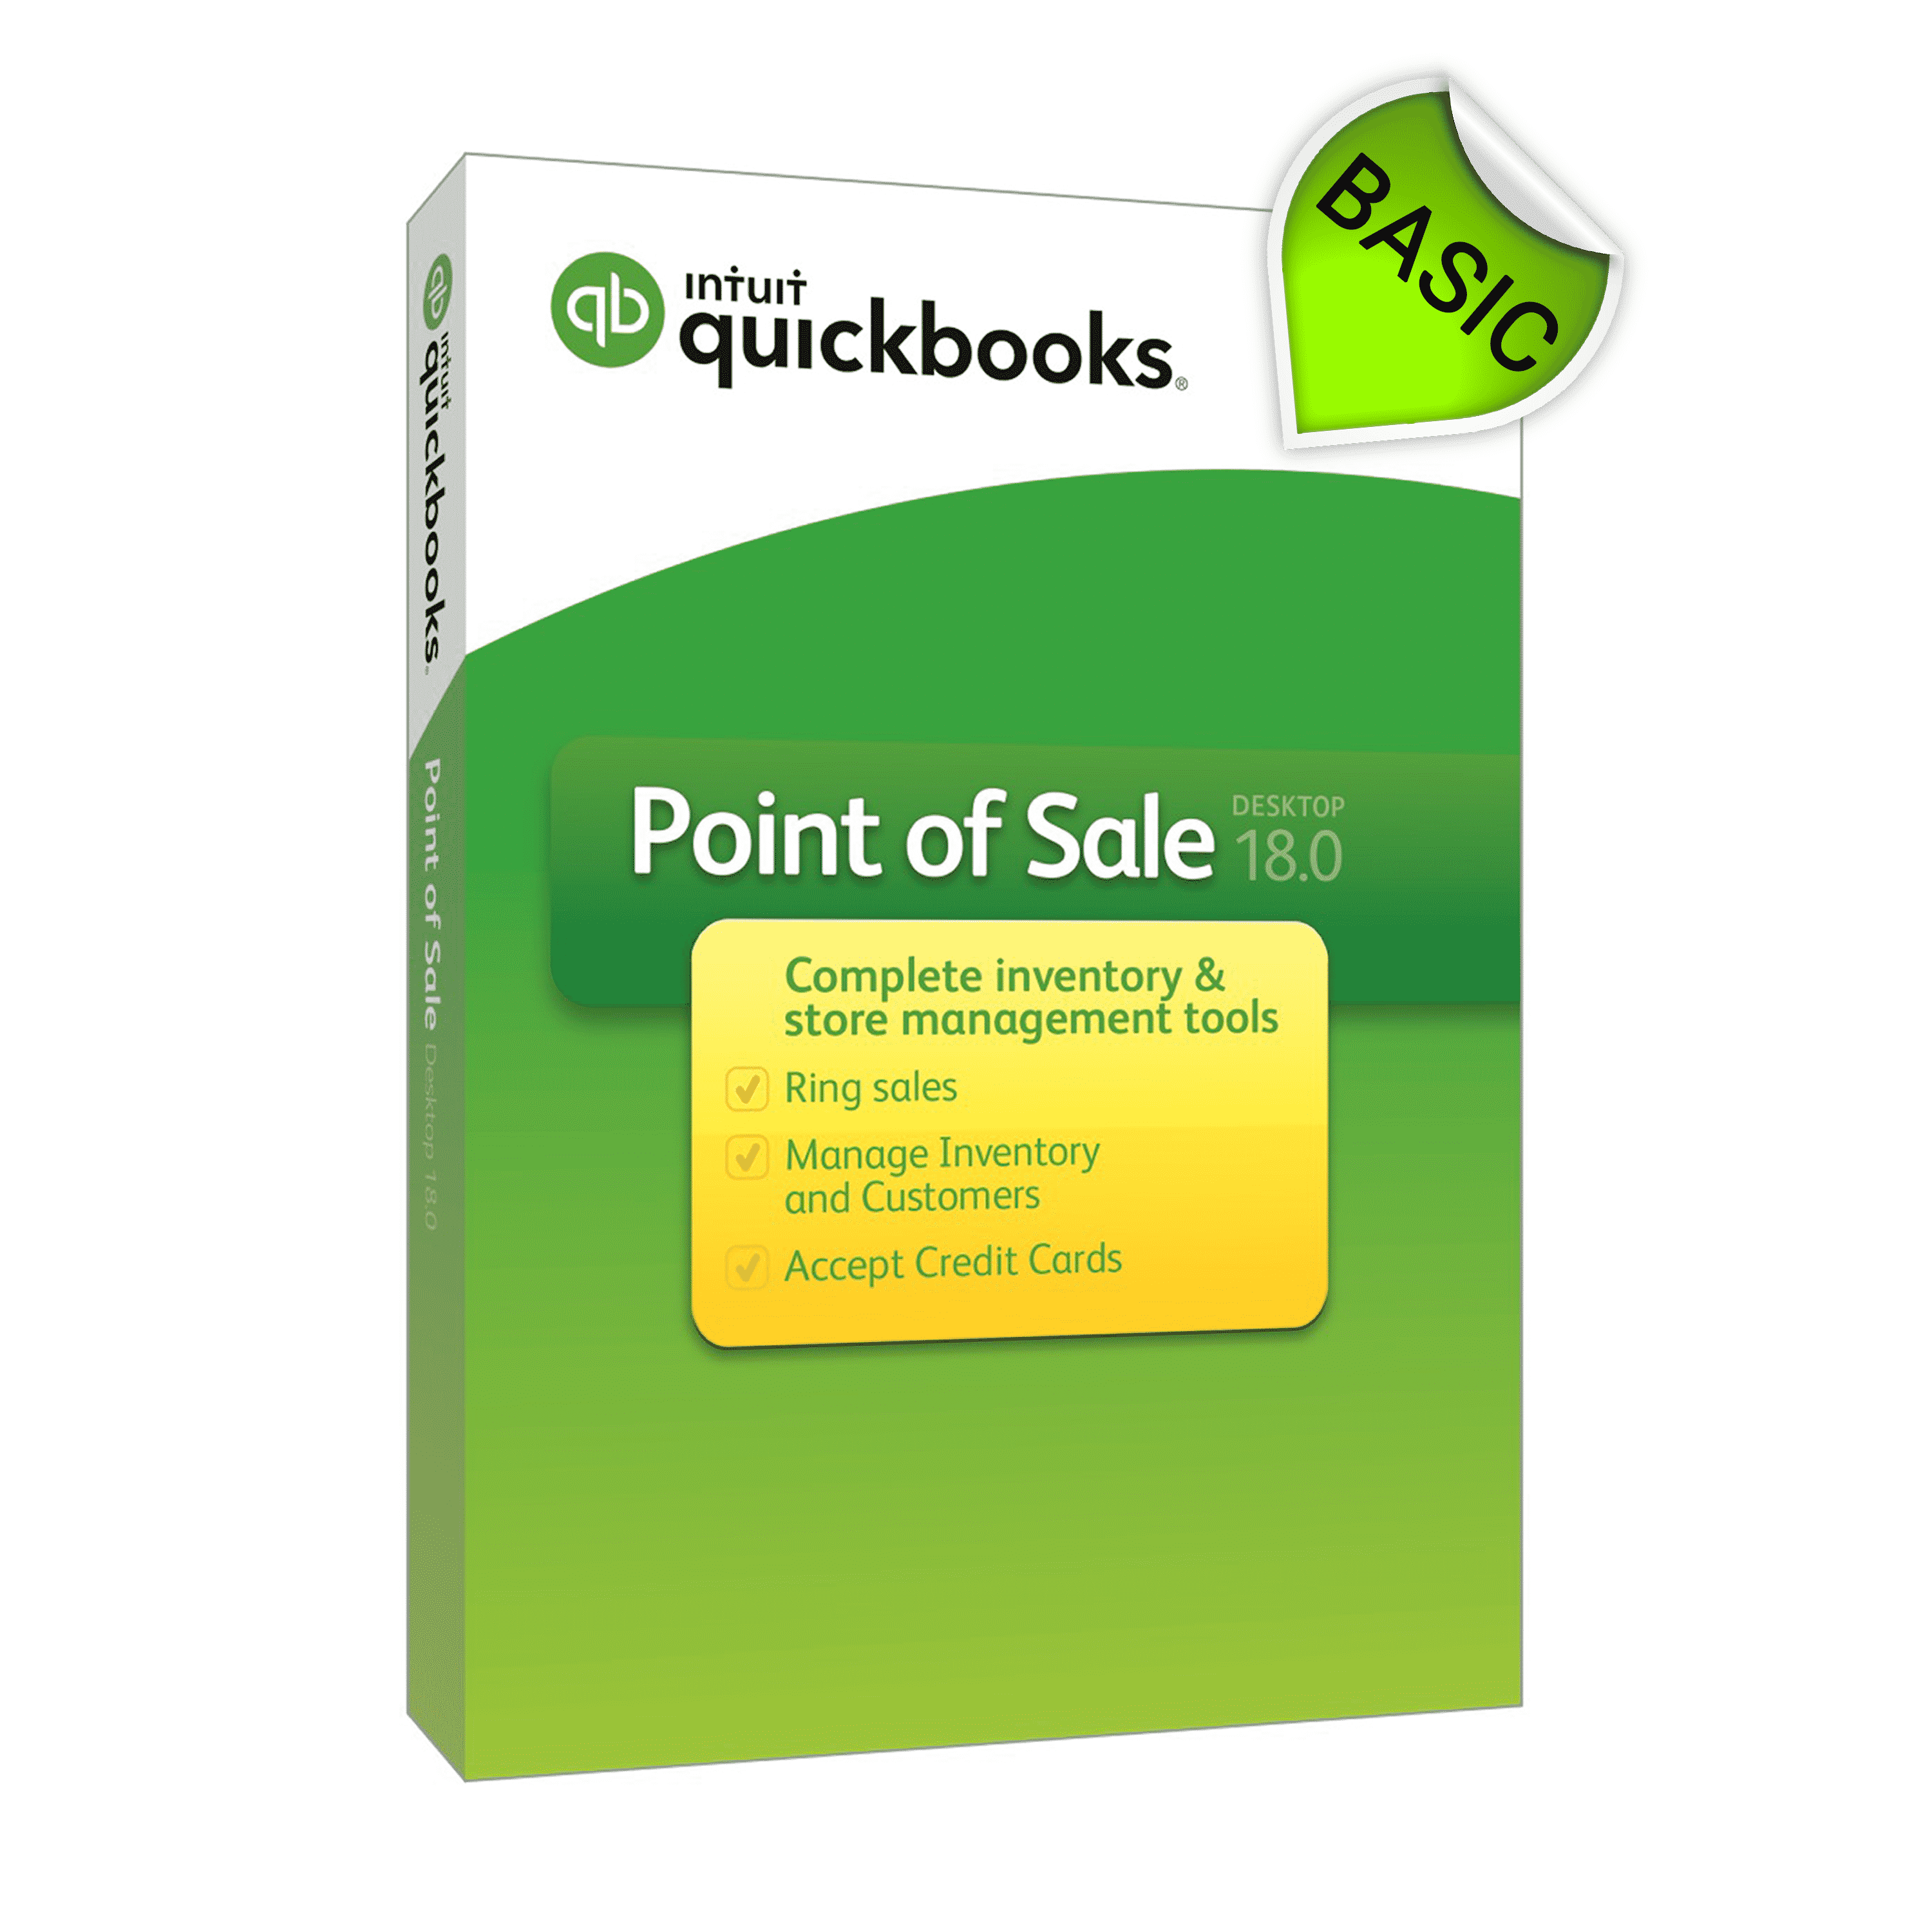 quickbooks-point-of-sale-basic-software